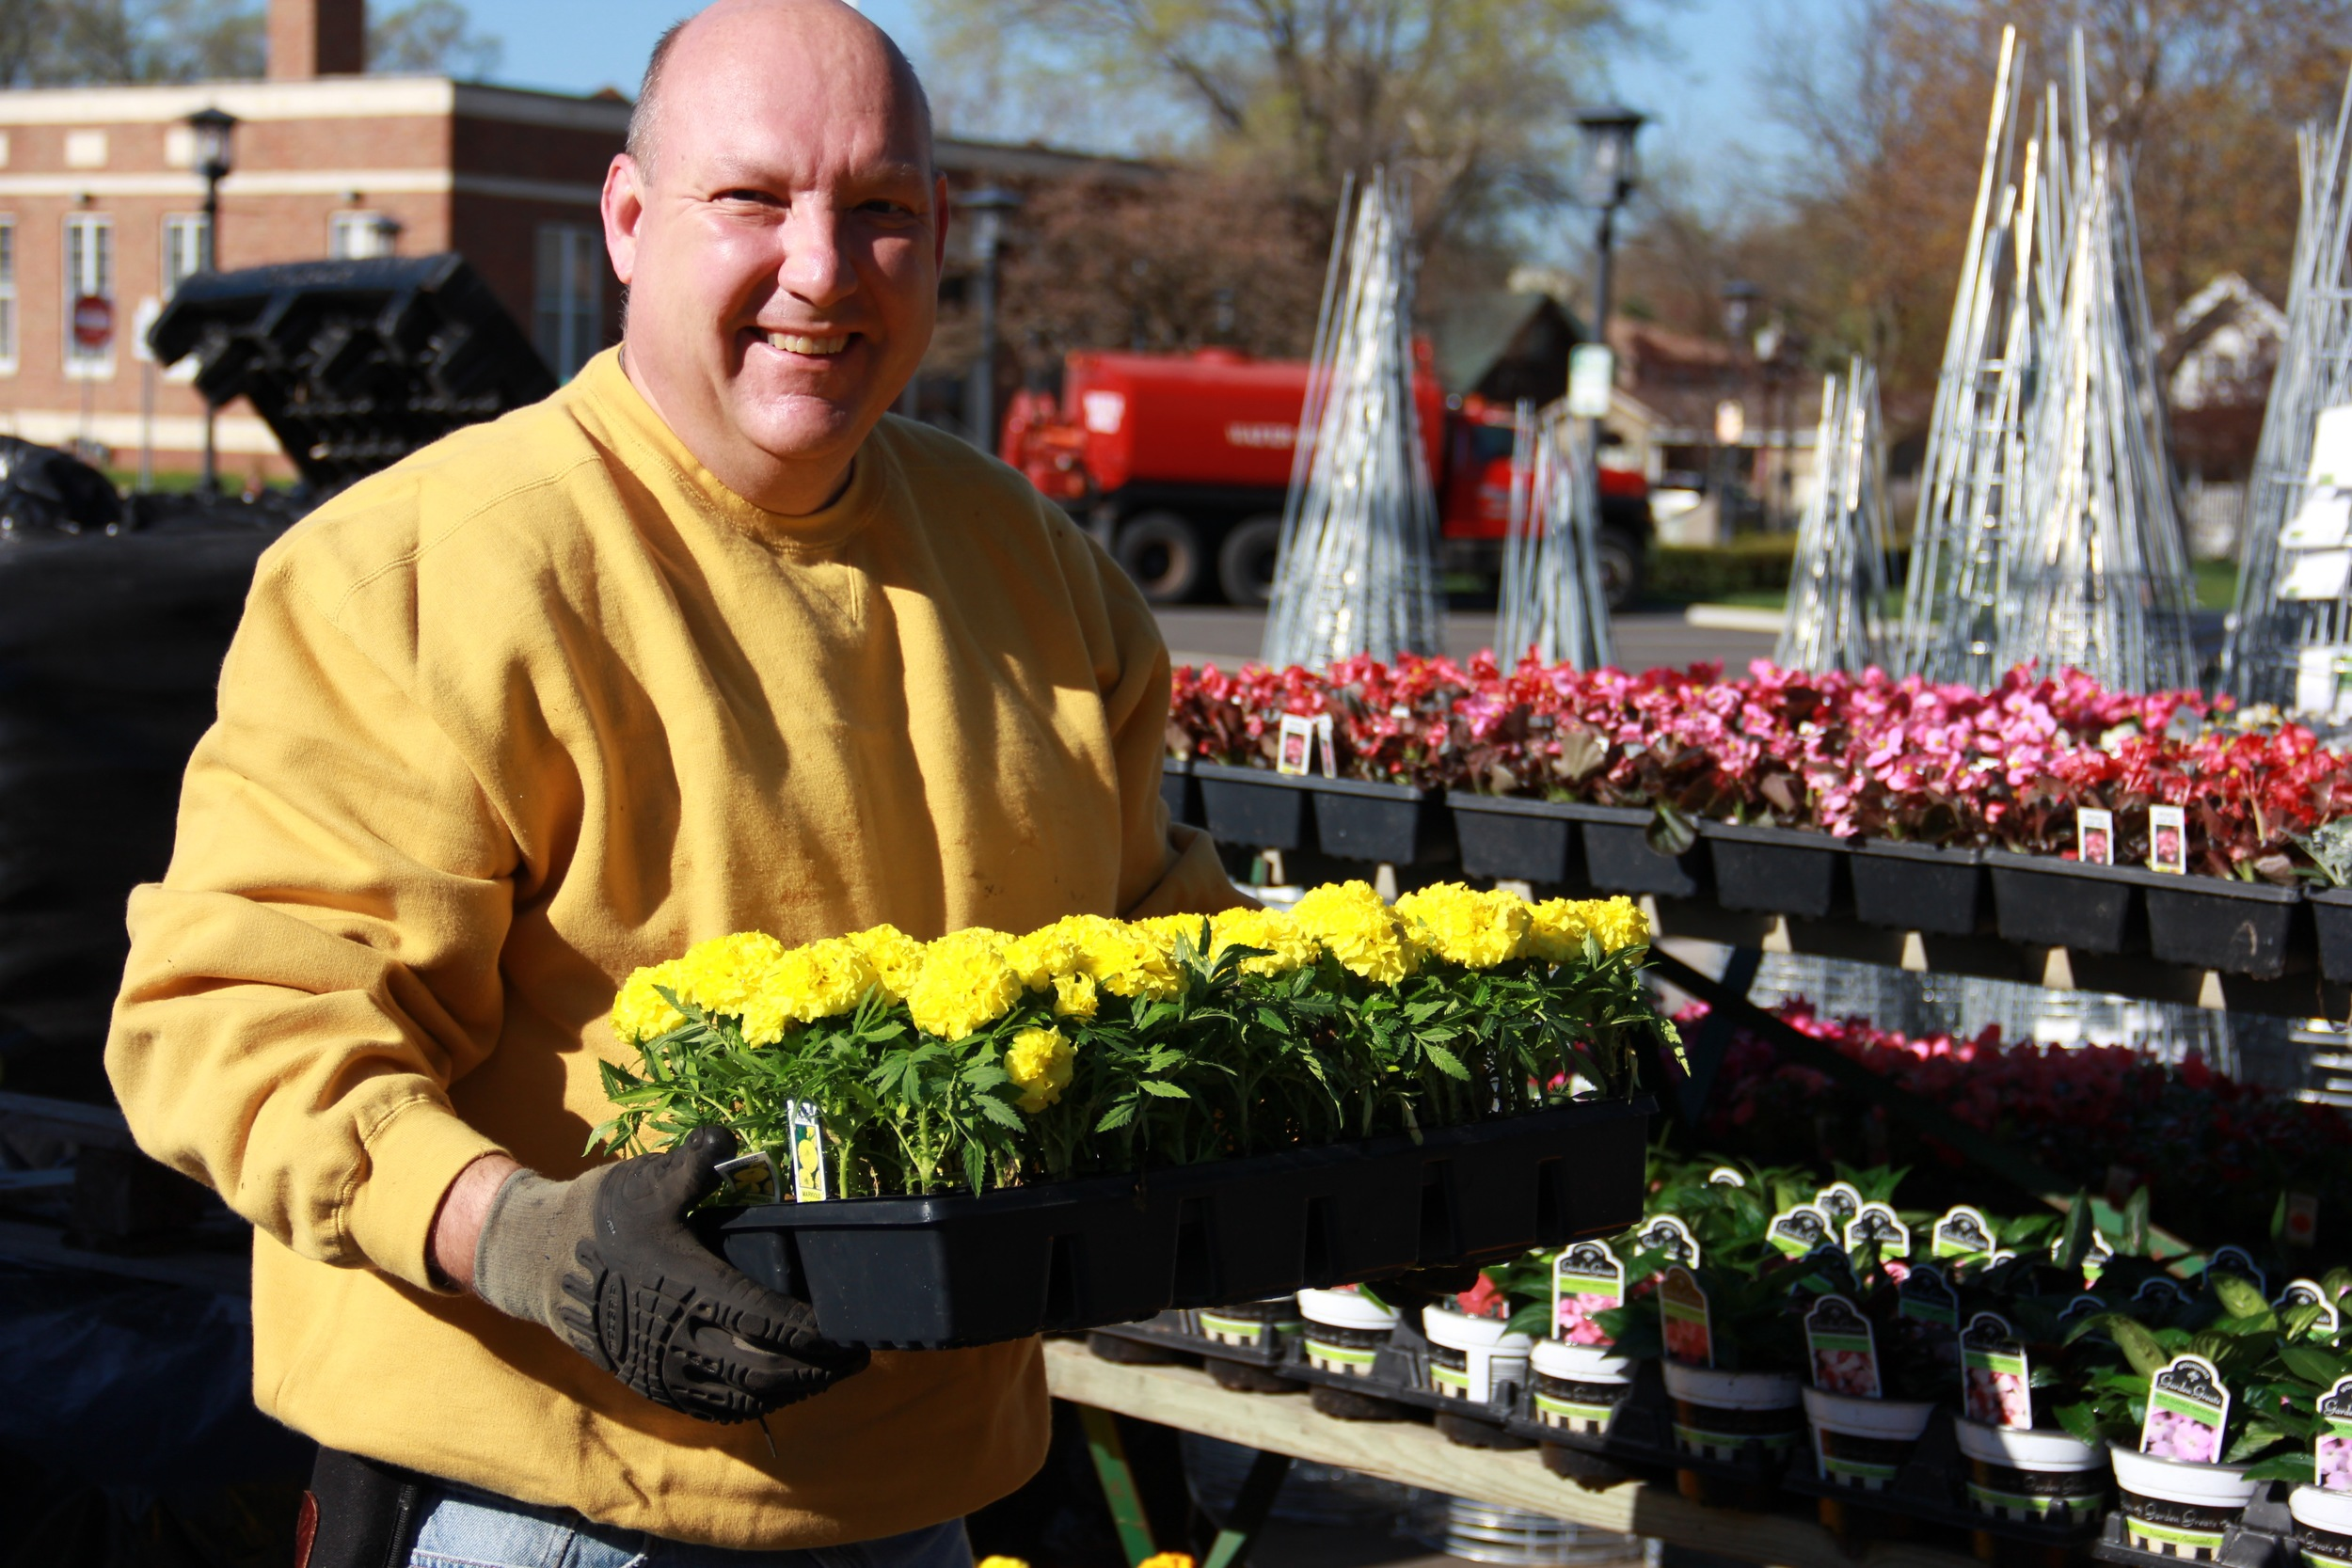 New staff member, Marty, is a plant expert and is excited to help you shop.